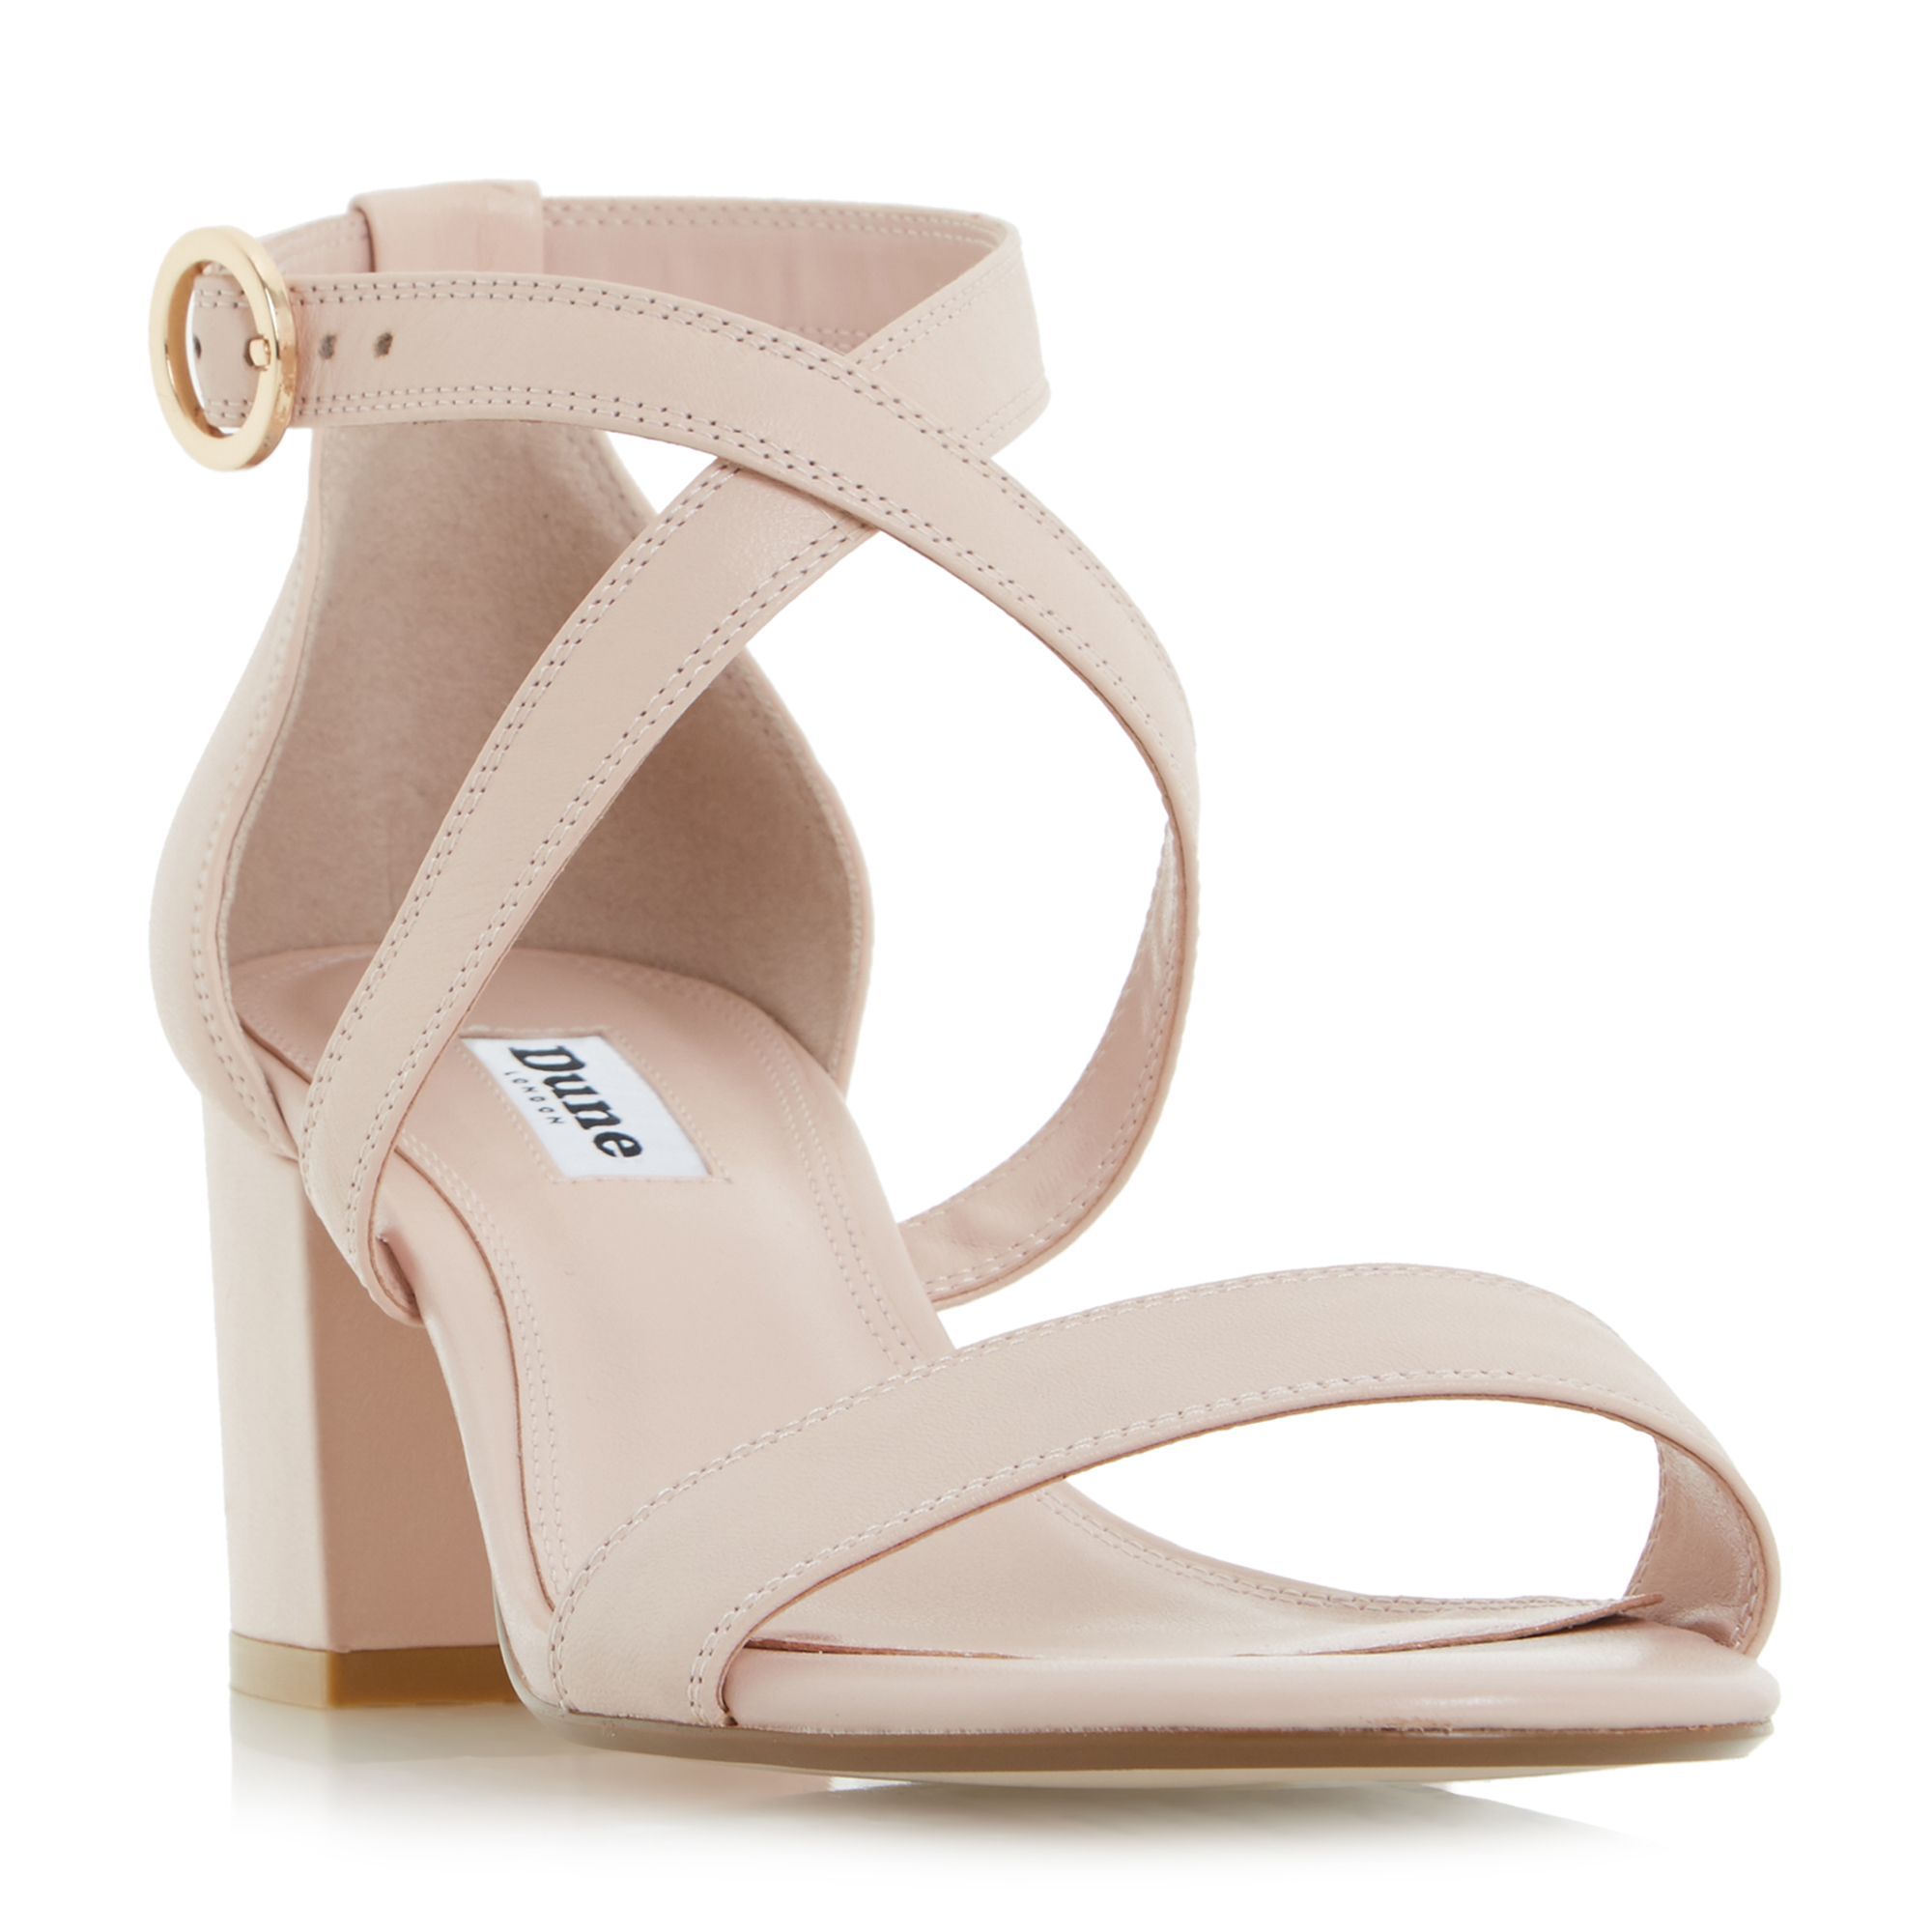 Shoes With Biggest Cuban Heel